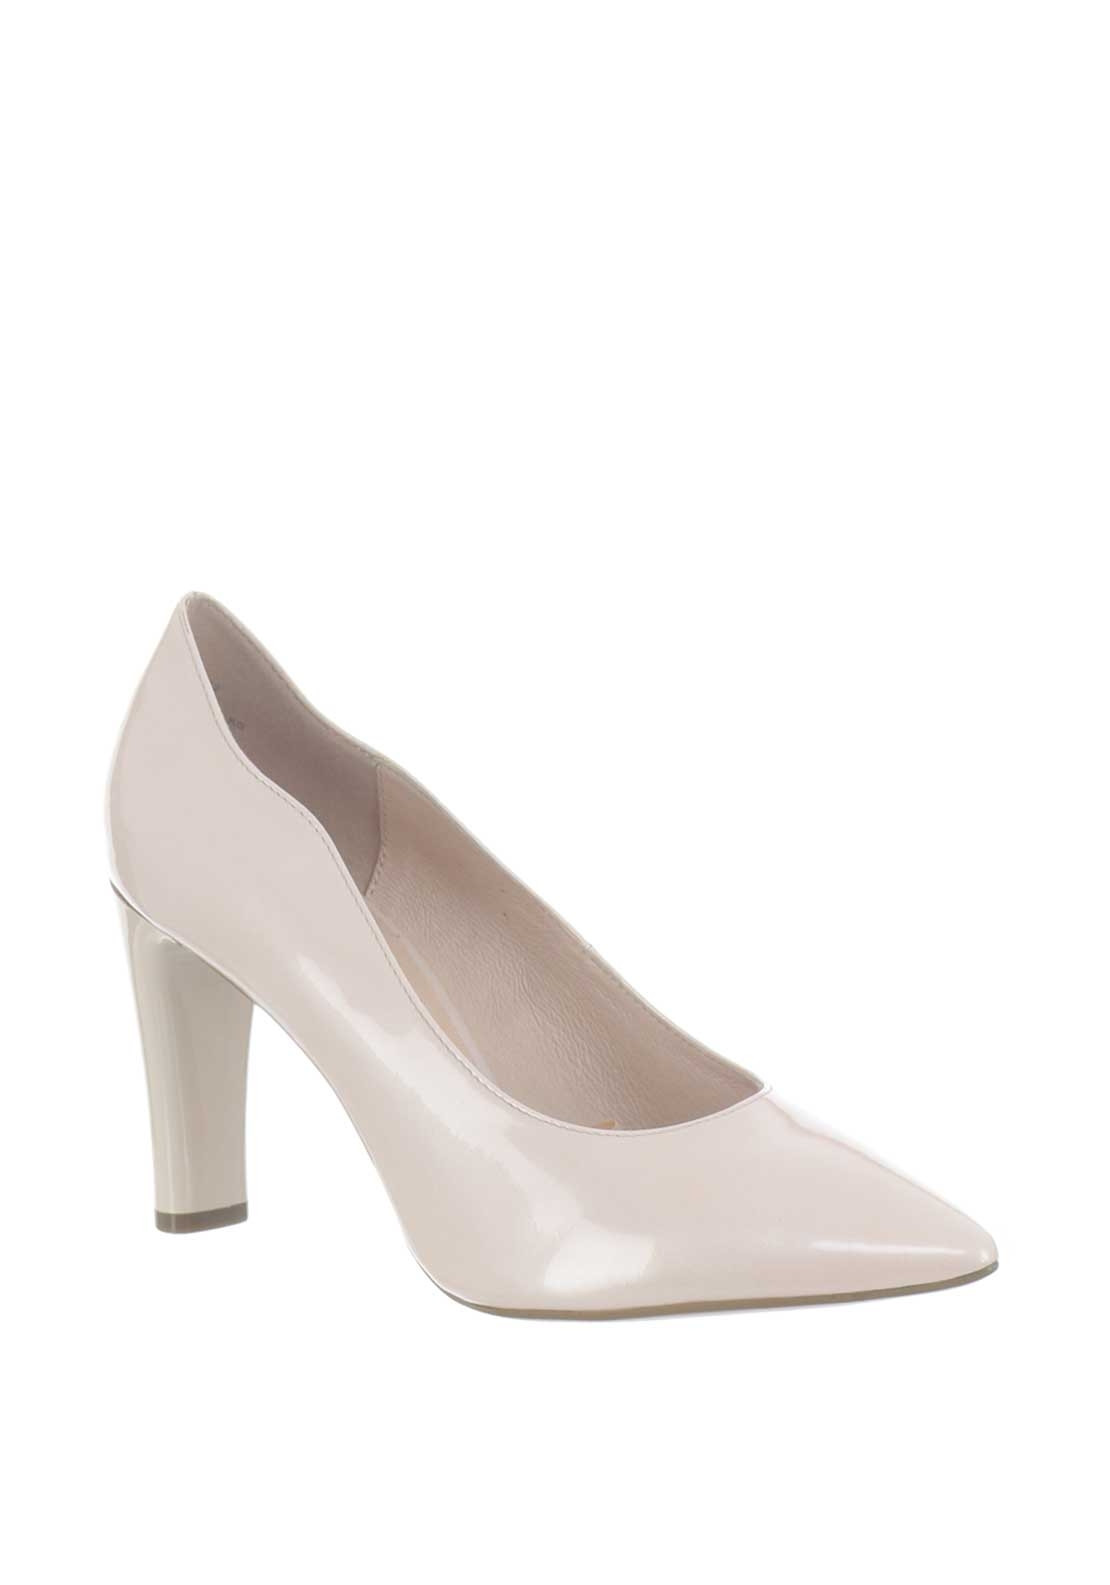 Caprice Patent Leather Pointed Toe Heeled Shoes 43f55e326